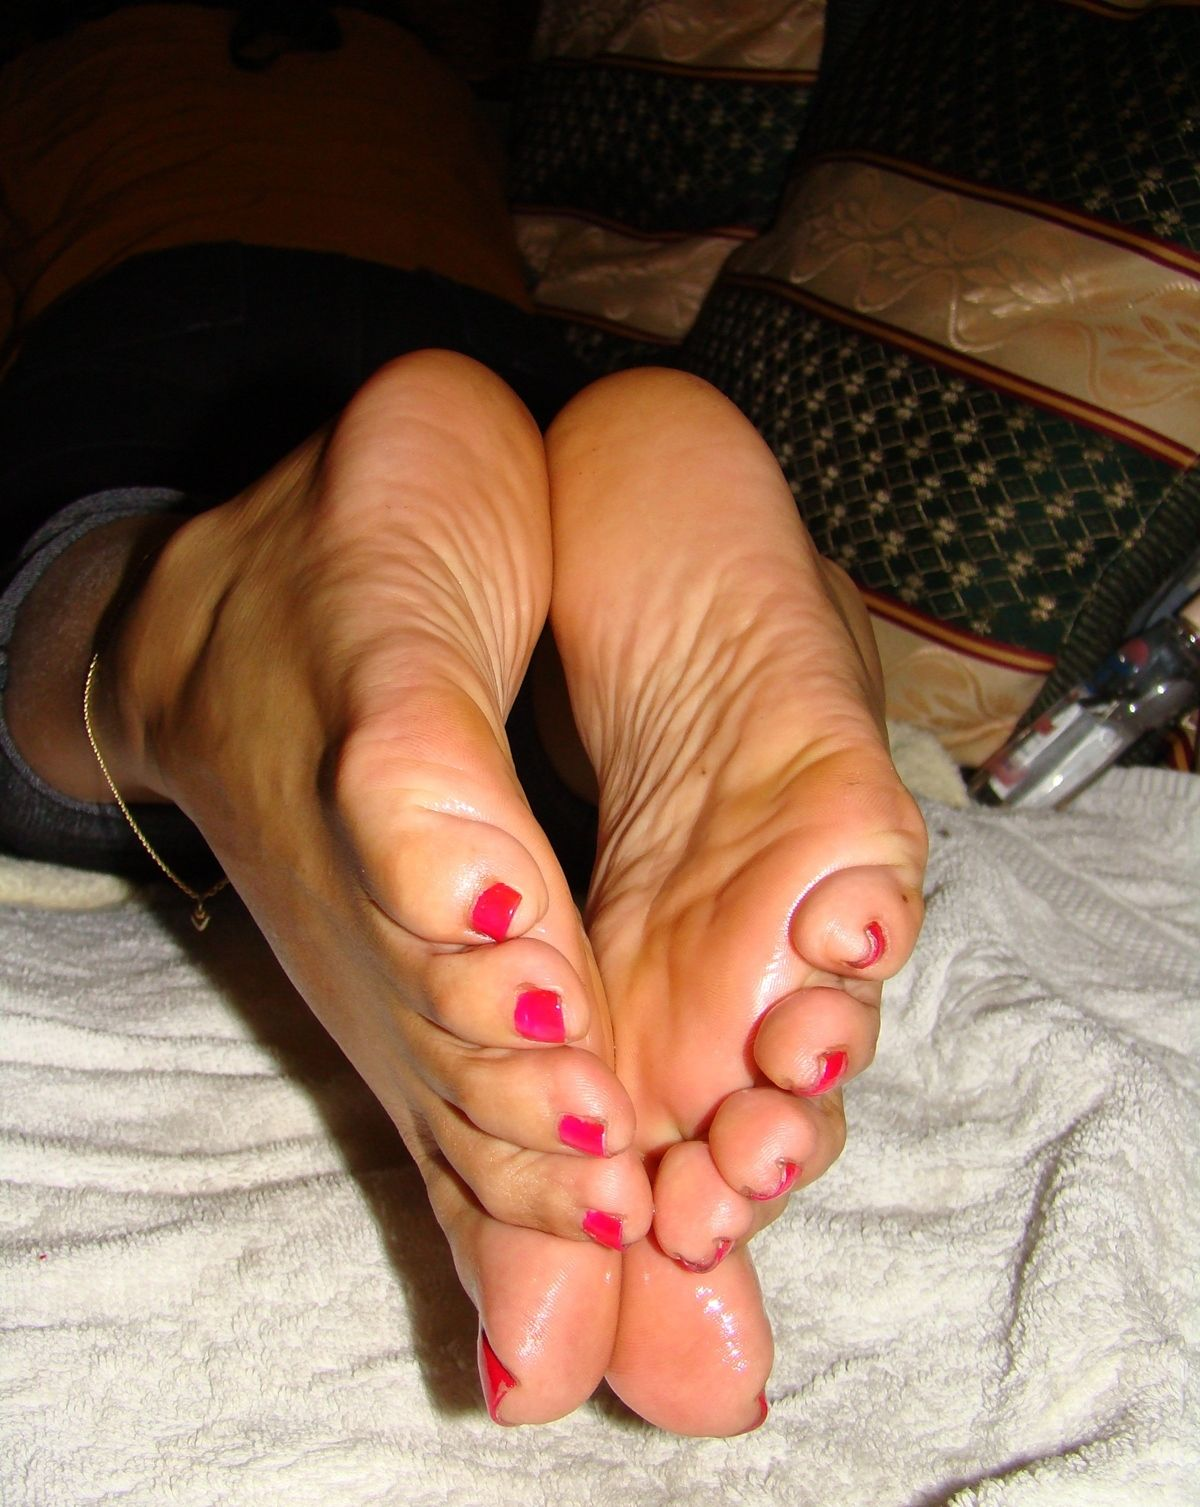 Oiled Soles And Red Painted Toenails World Of Feet